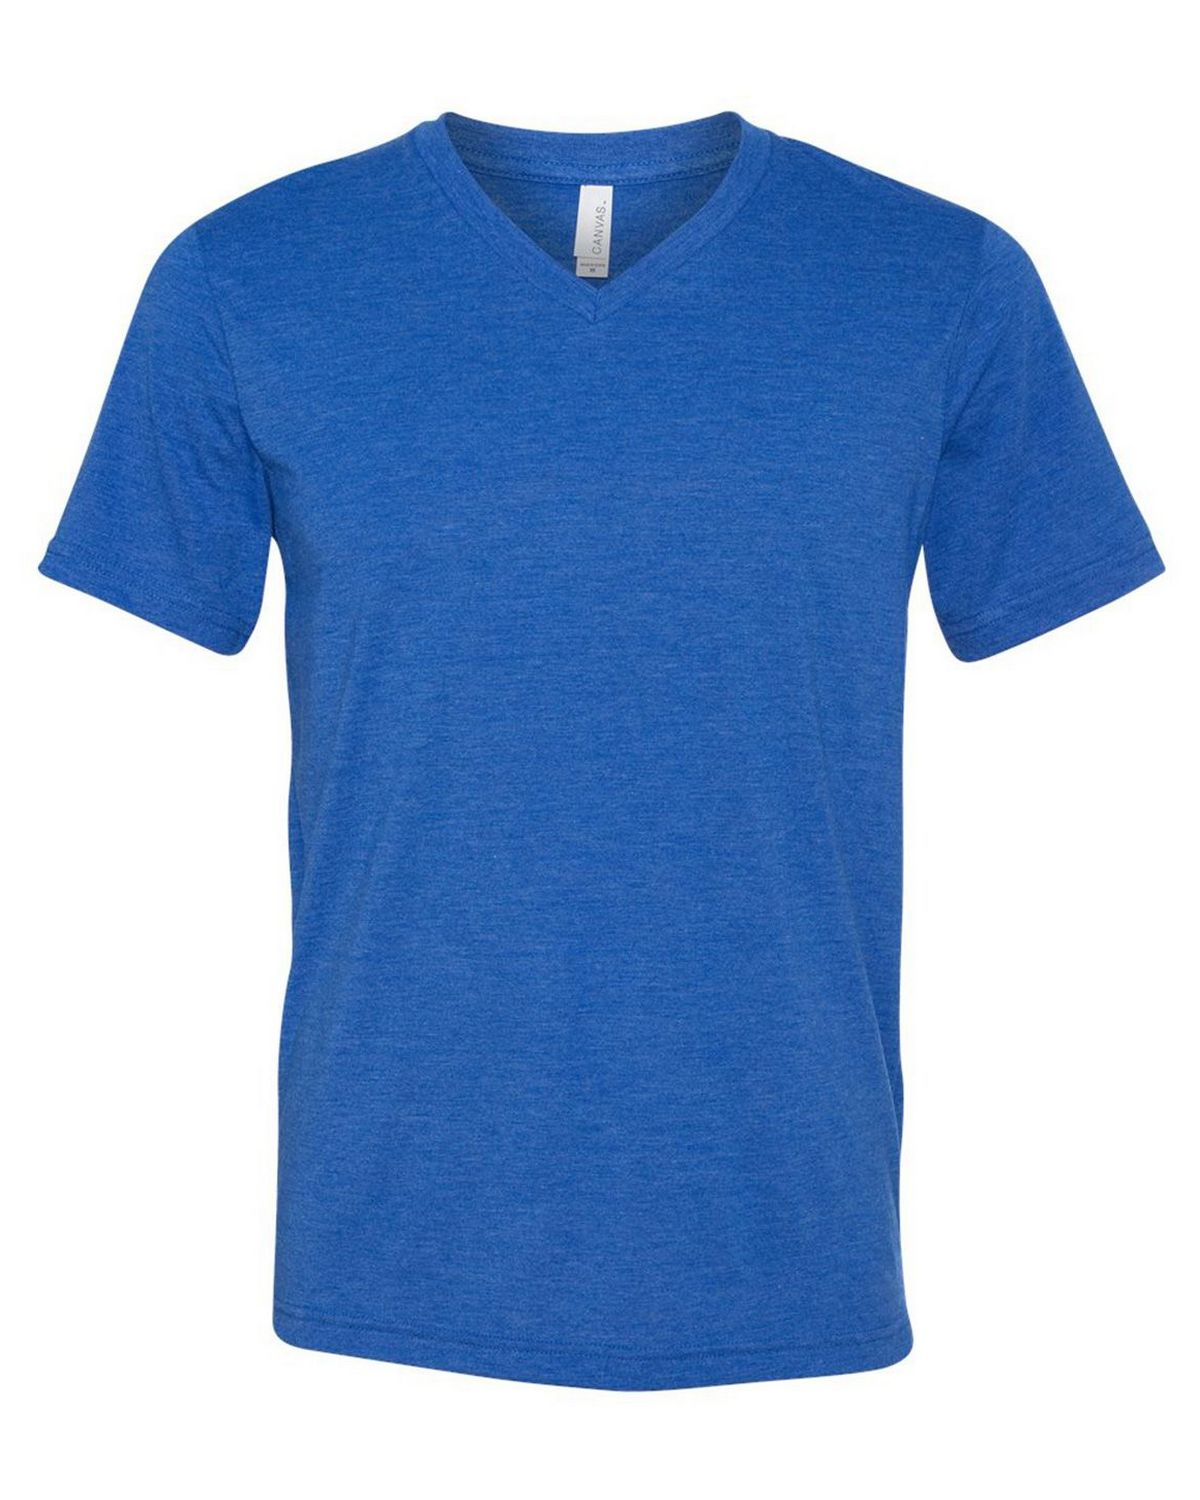 Bella + Canvas 3415 Triblend Short Sleeve V-Neck Unisex Tee - True Royal Triblend - XS from Bella + Canvas